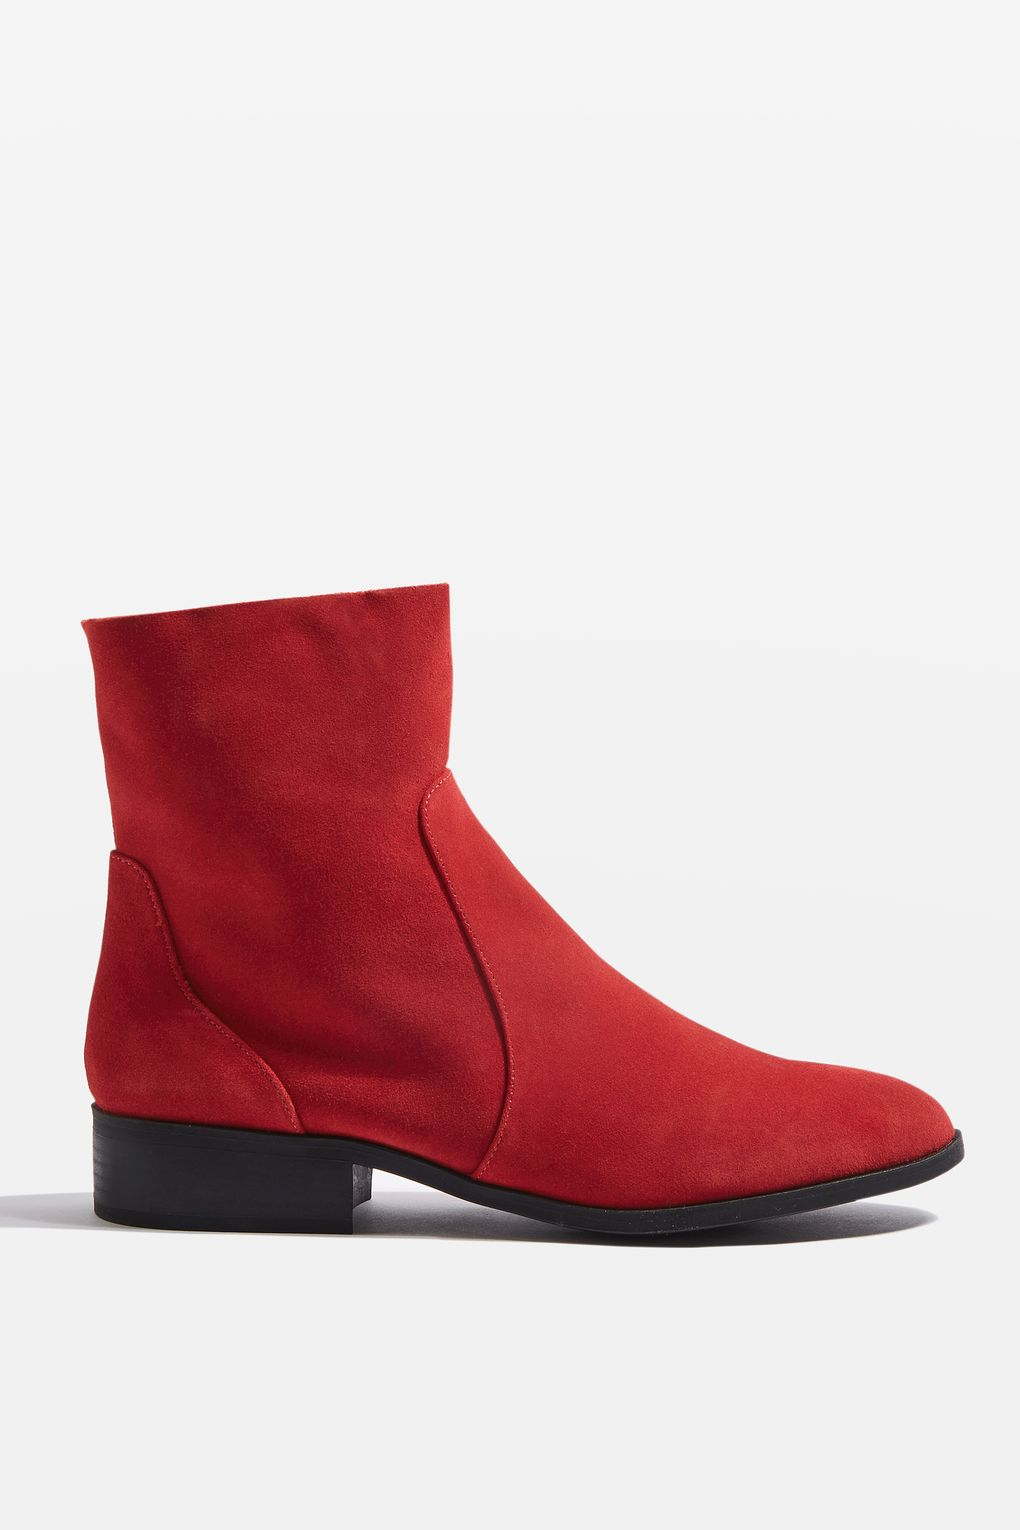 topshop-red-boots